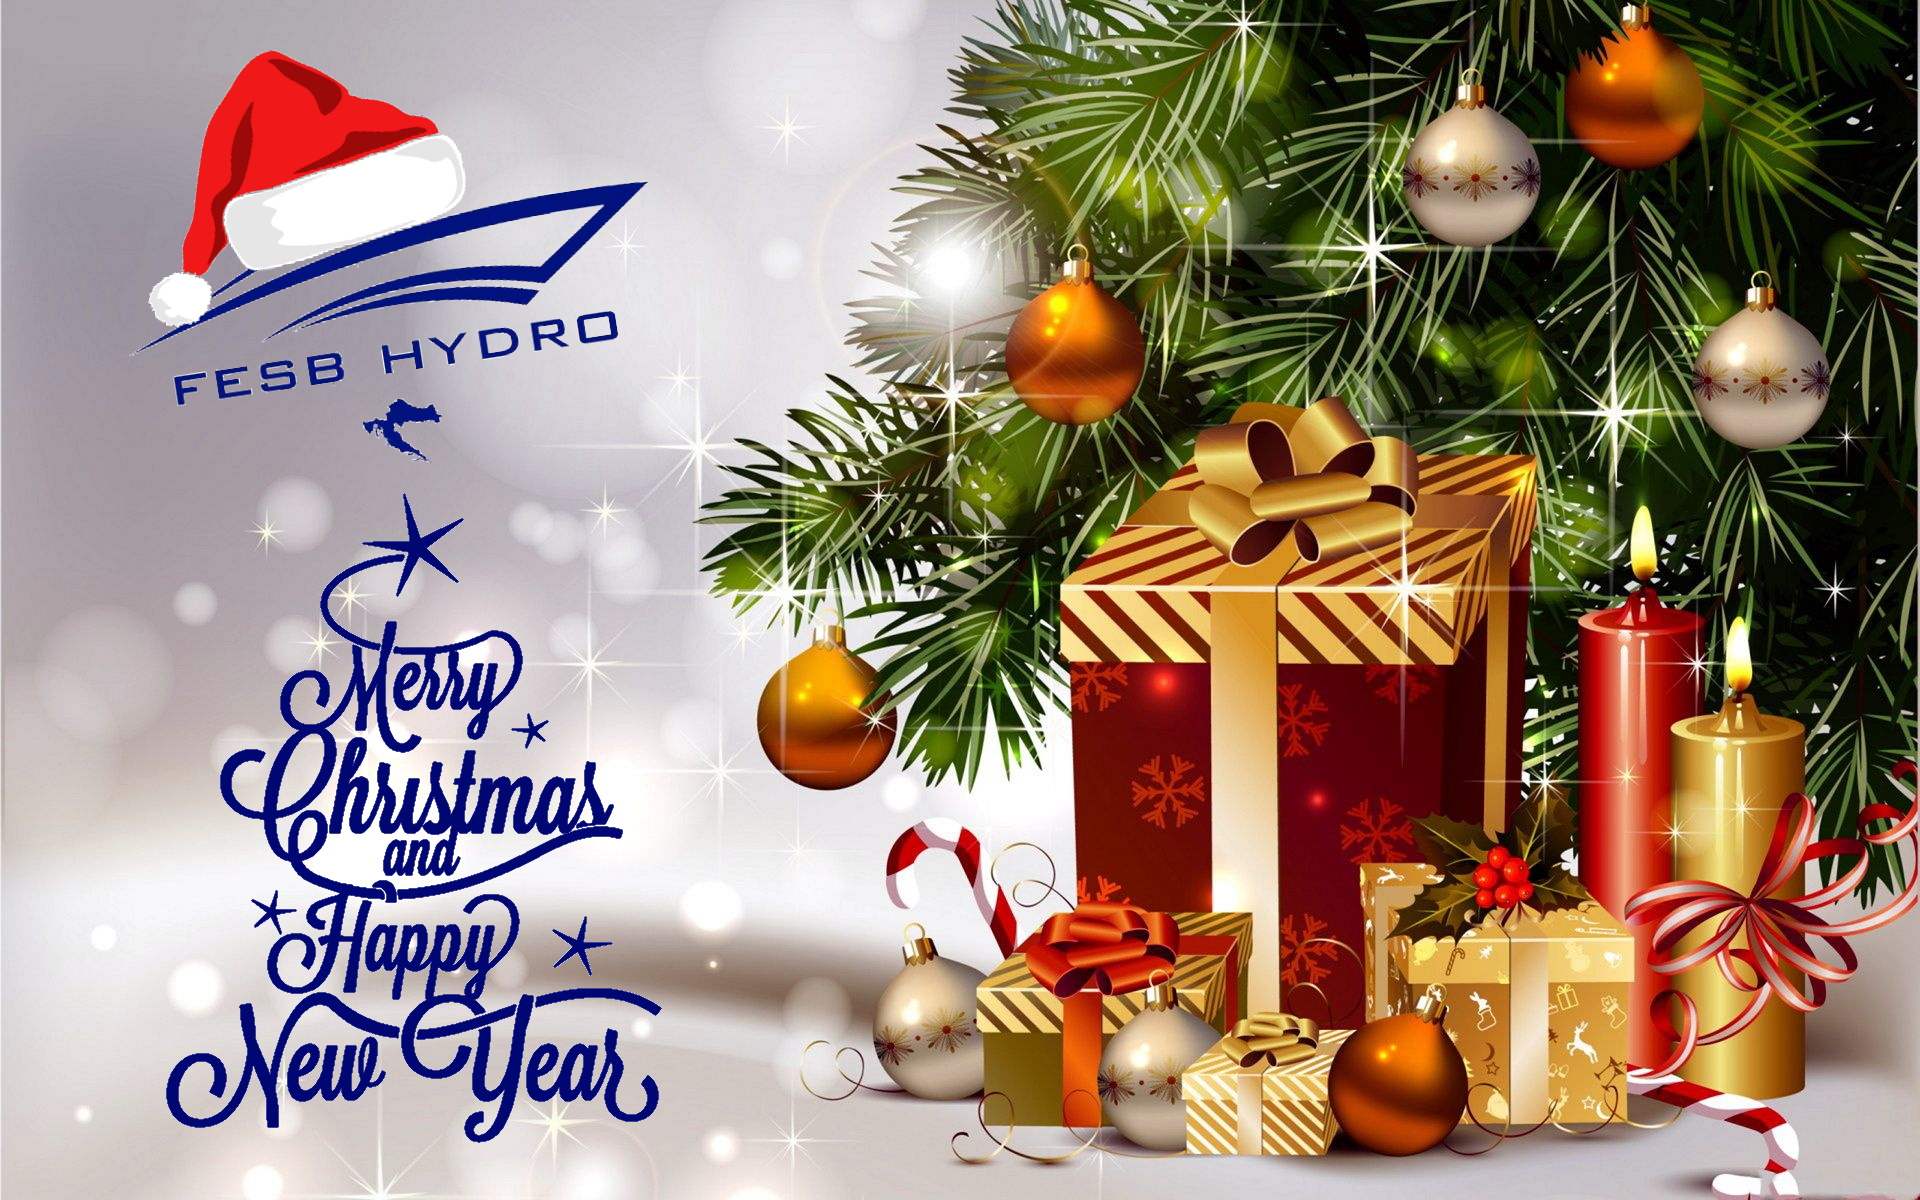 Merry Christmas and Happy New Year wishes you FESB Hydro team